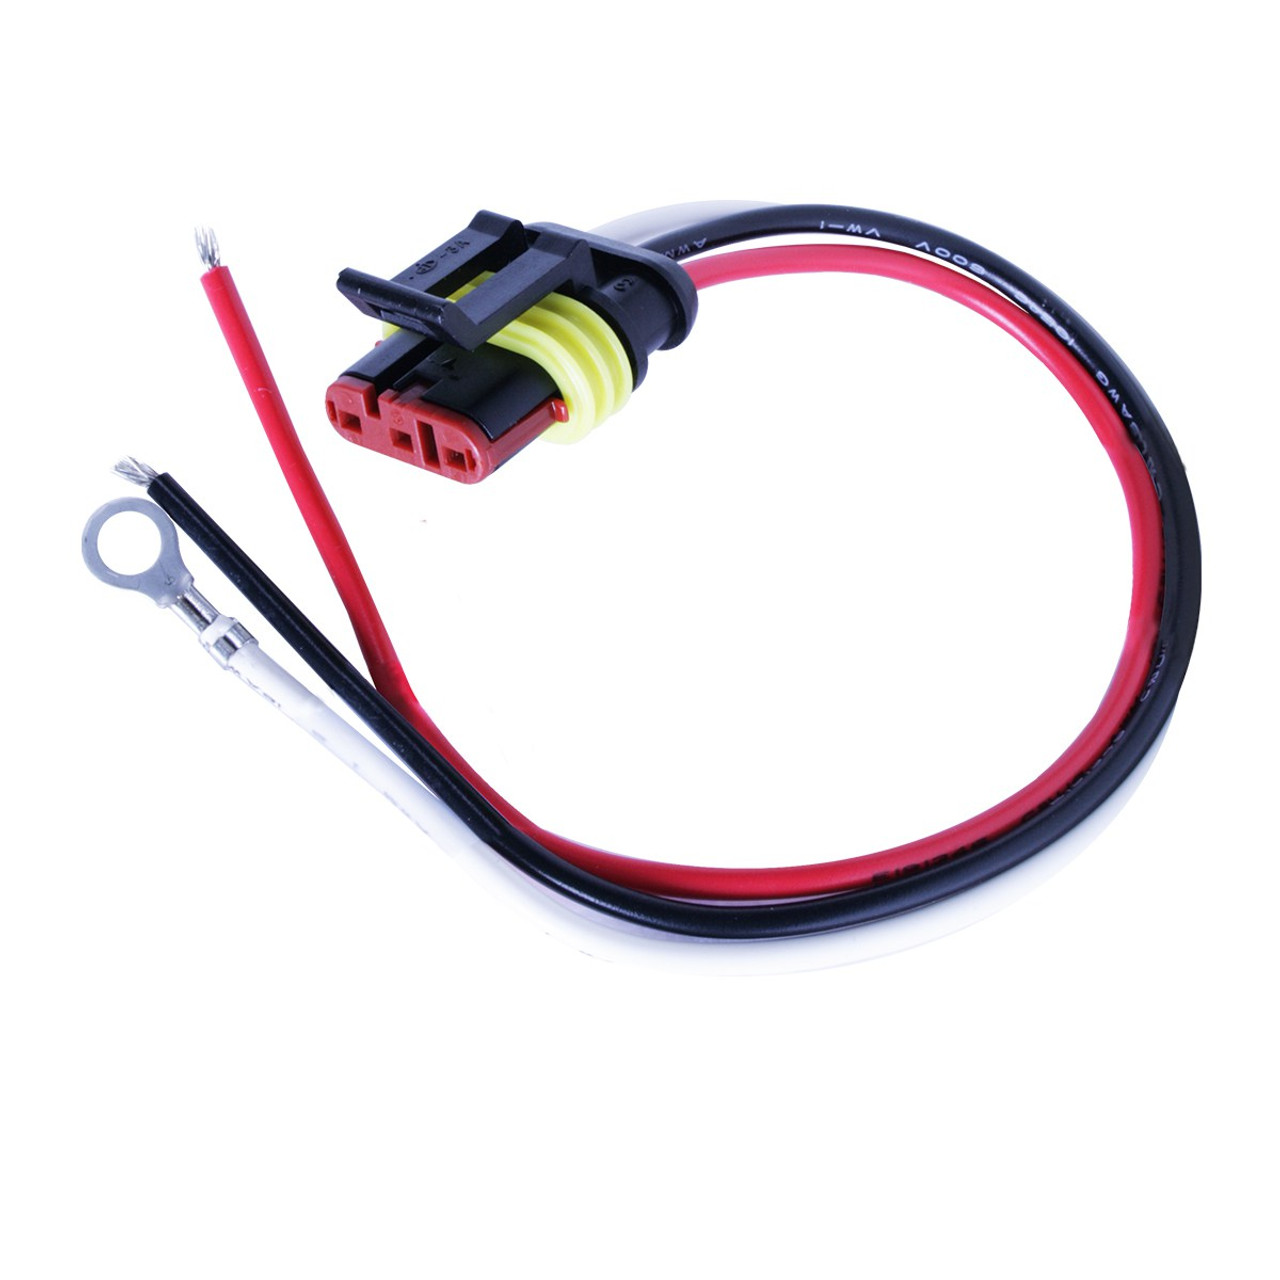 3 pin light plug for dual function lights elite truck accessories